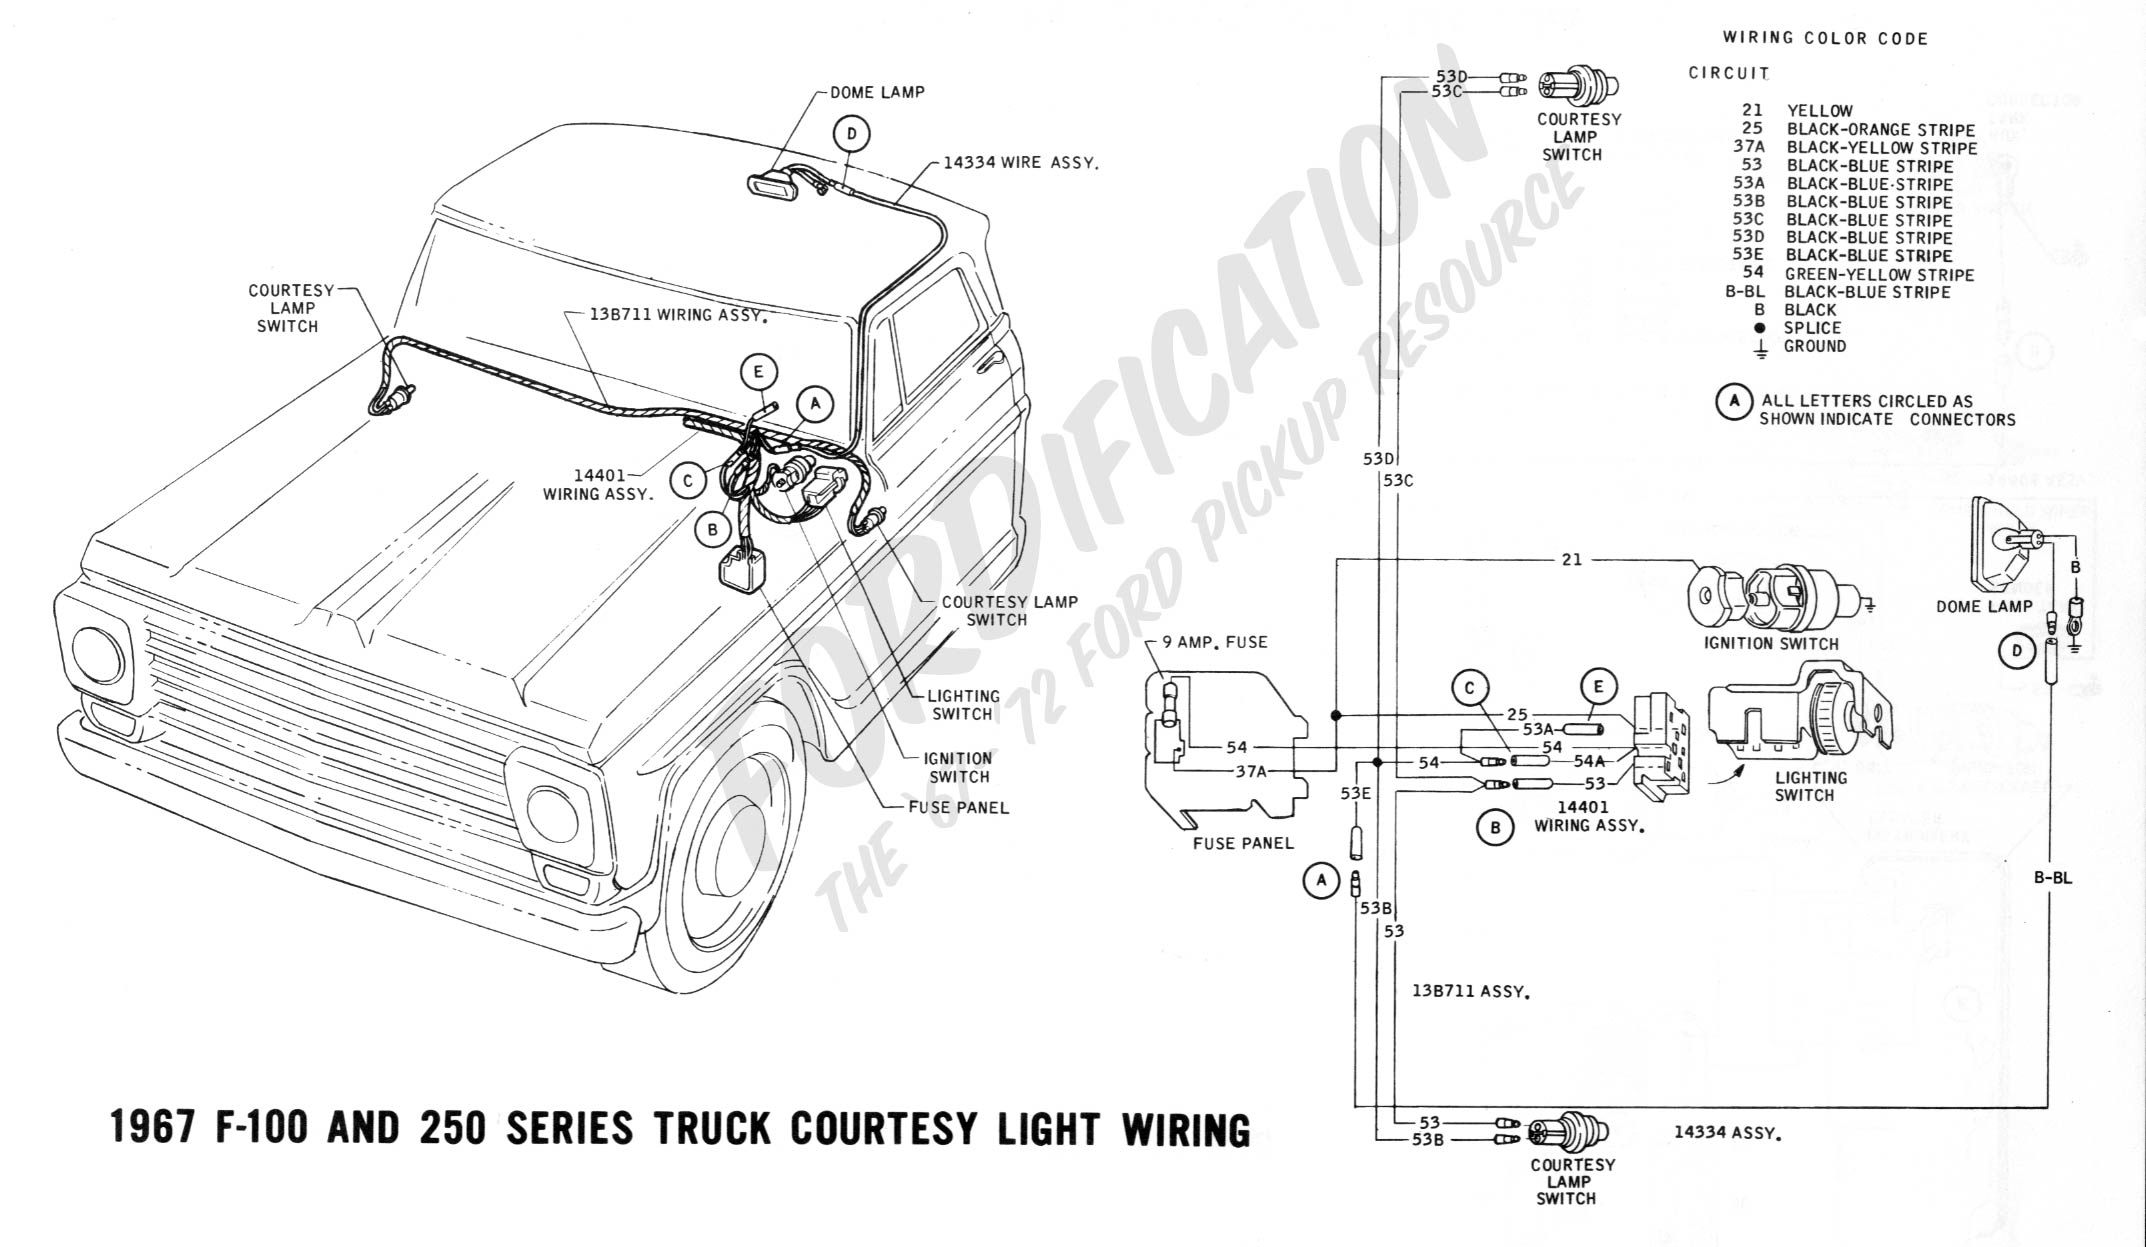 wiring 1967courtesylight wiring in ignition switch in 1966 f100 ford truck enthusiasts forums 1966 ford truck wiring diagram at nearapp.co